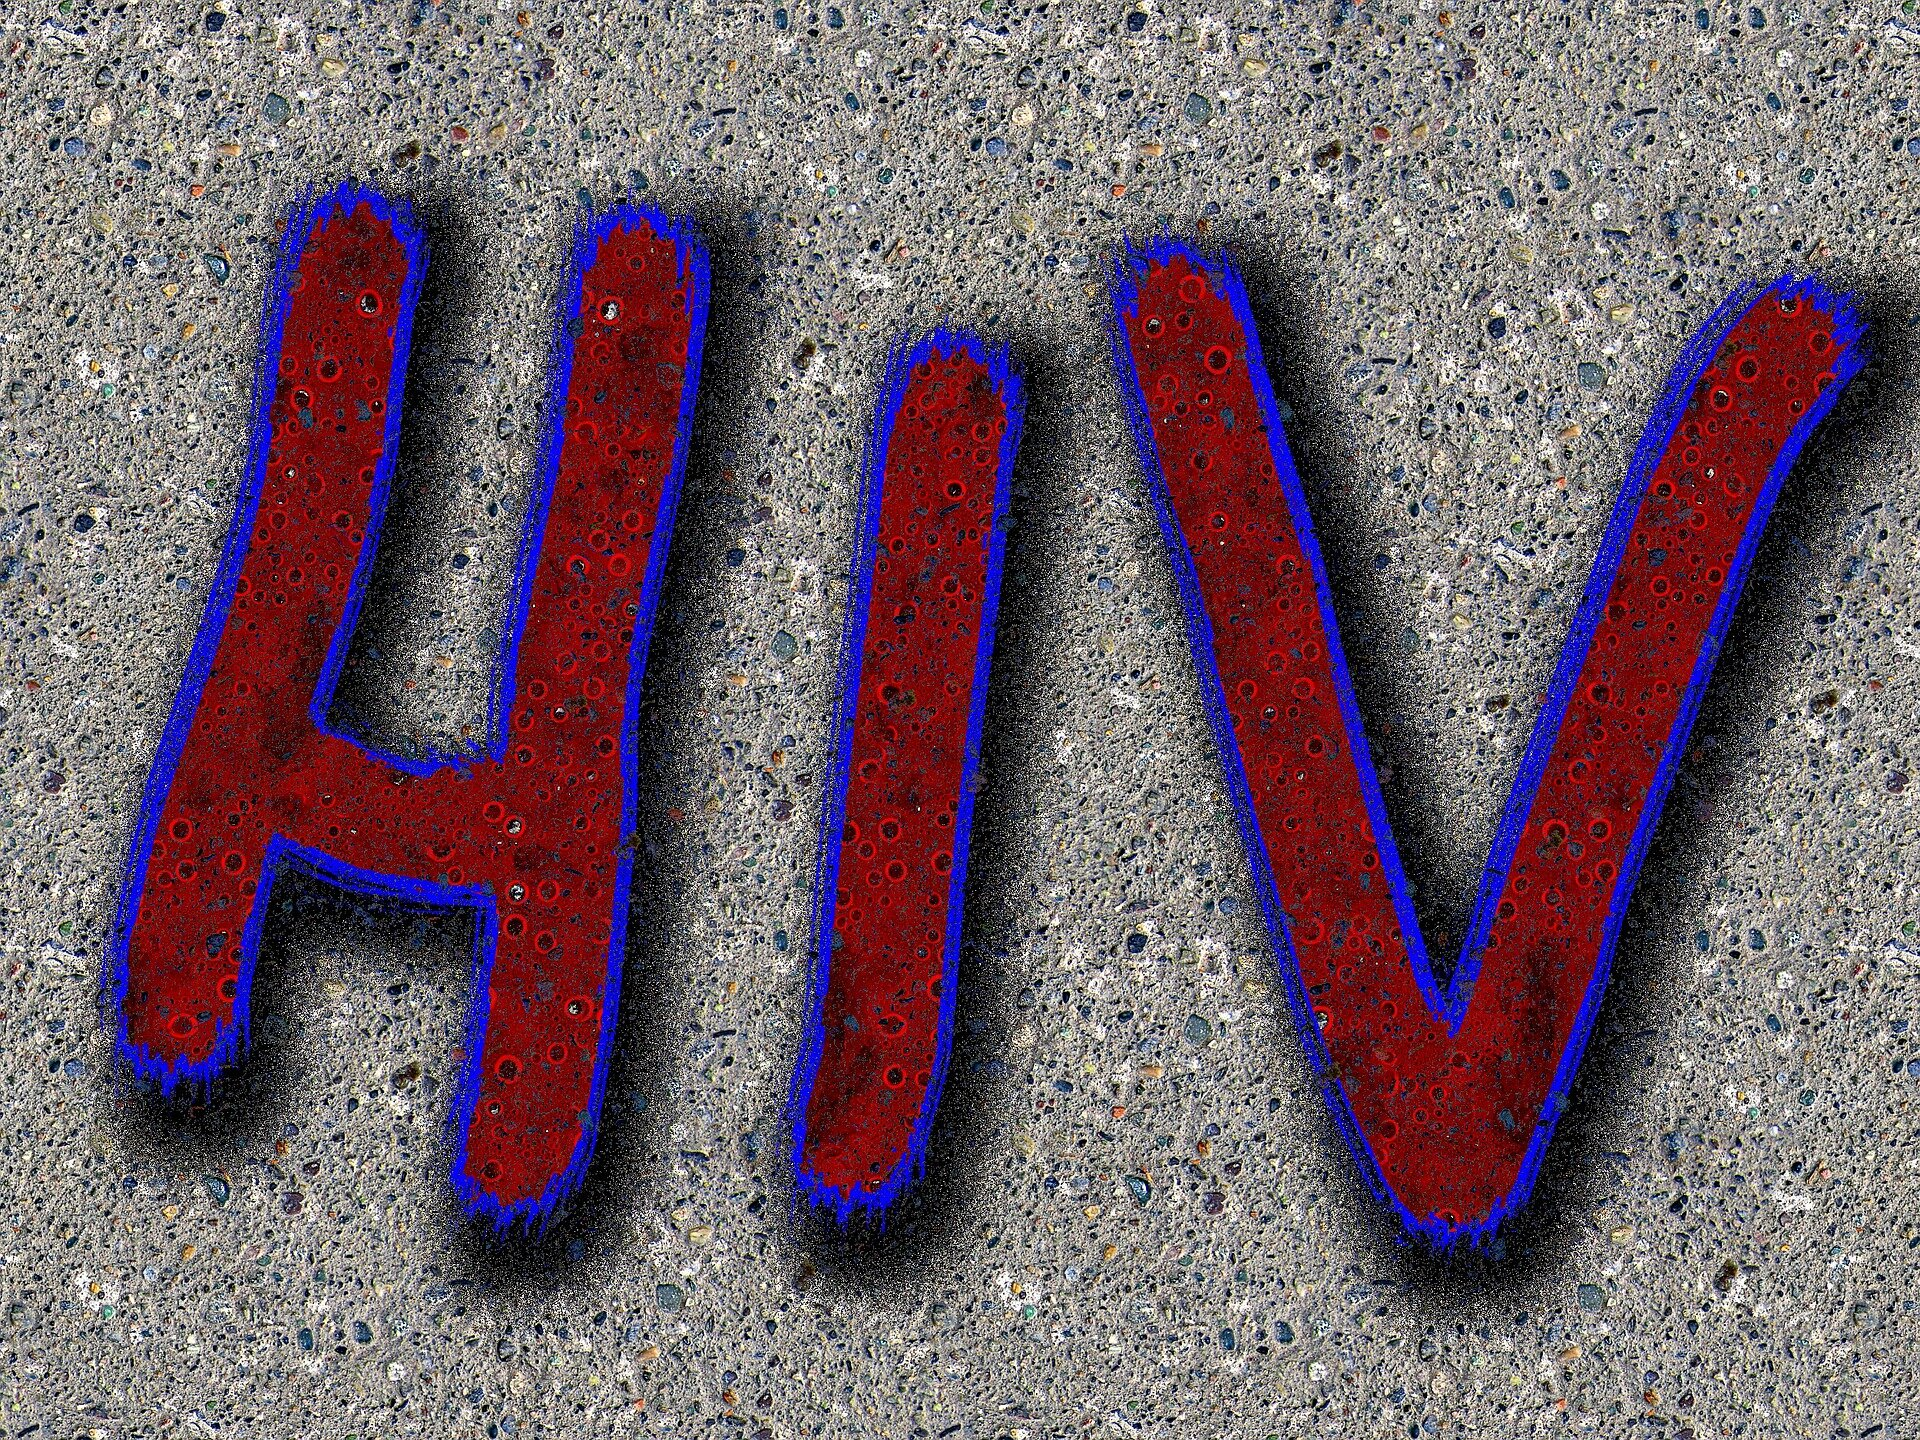 People Willing to Risk Near-Certain Death for an HIV Cure